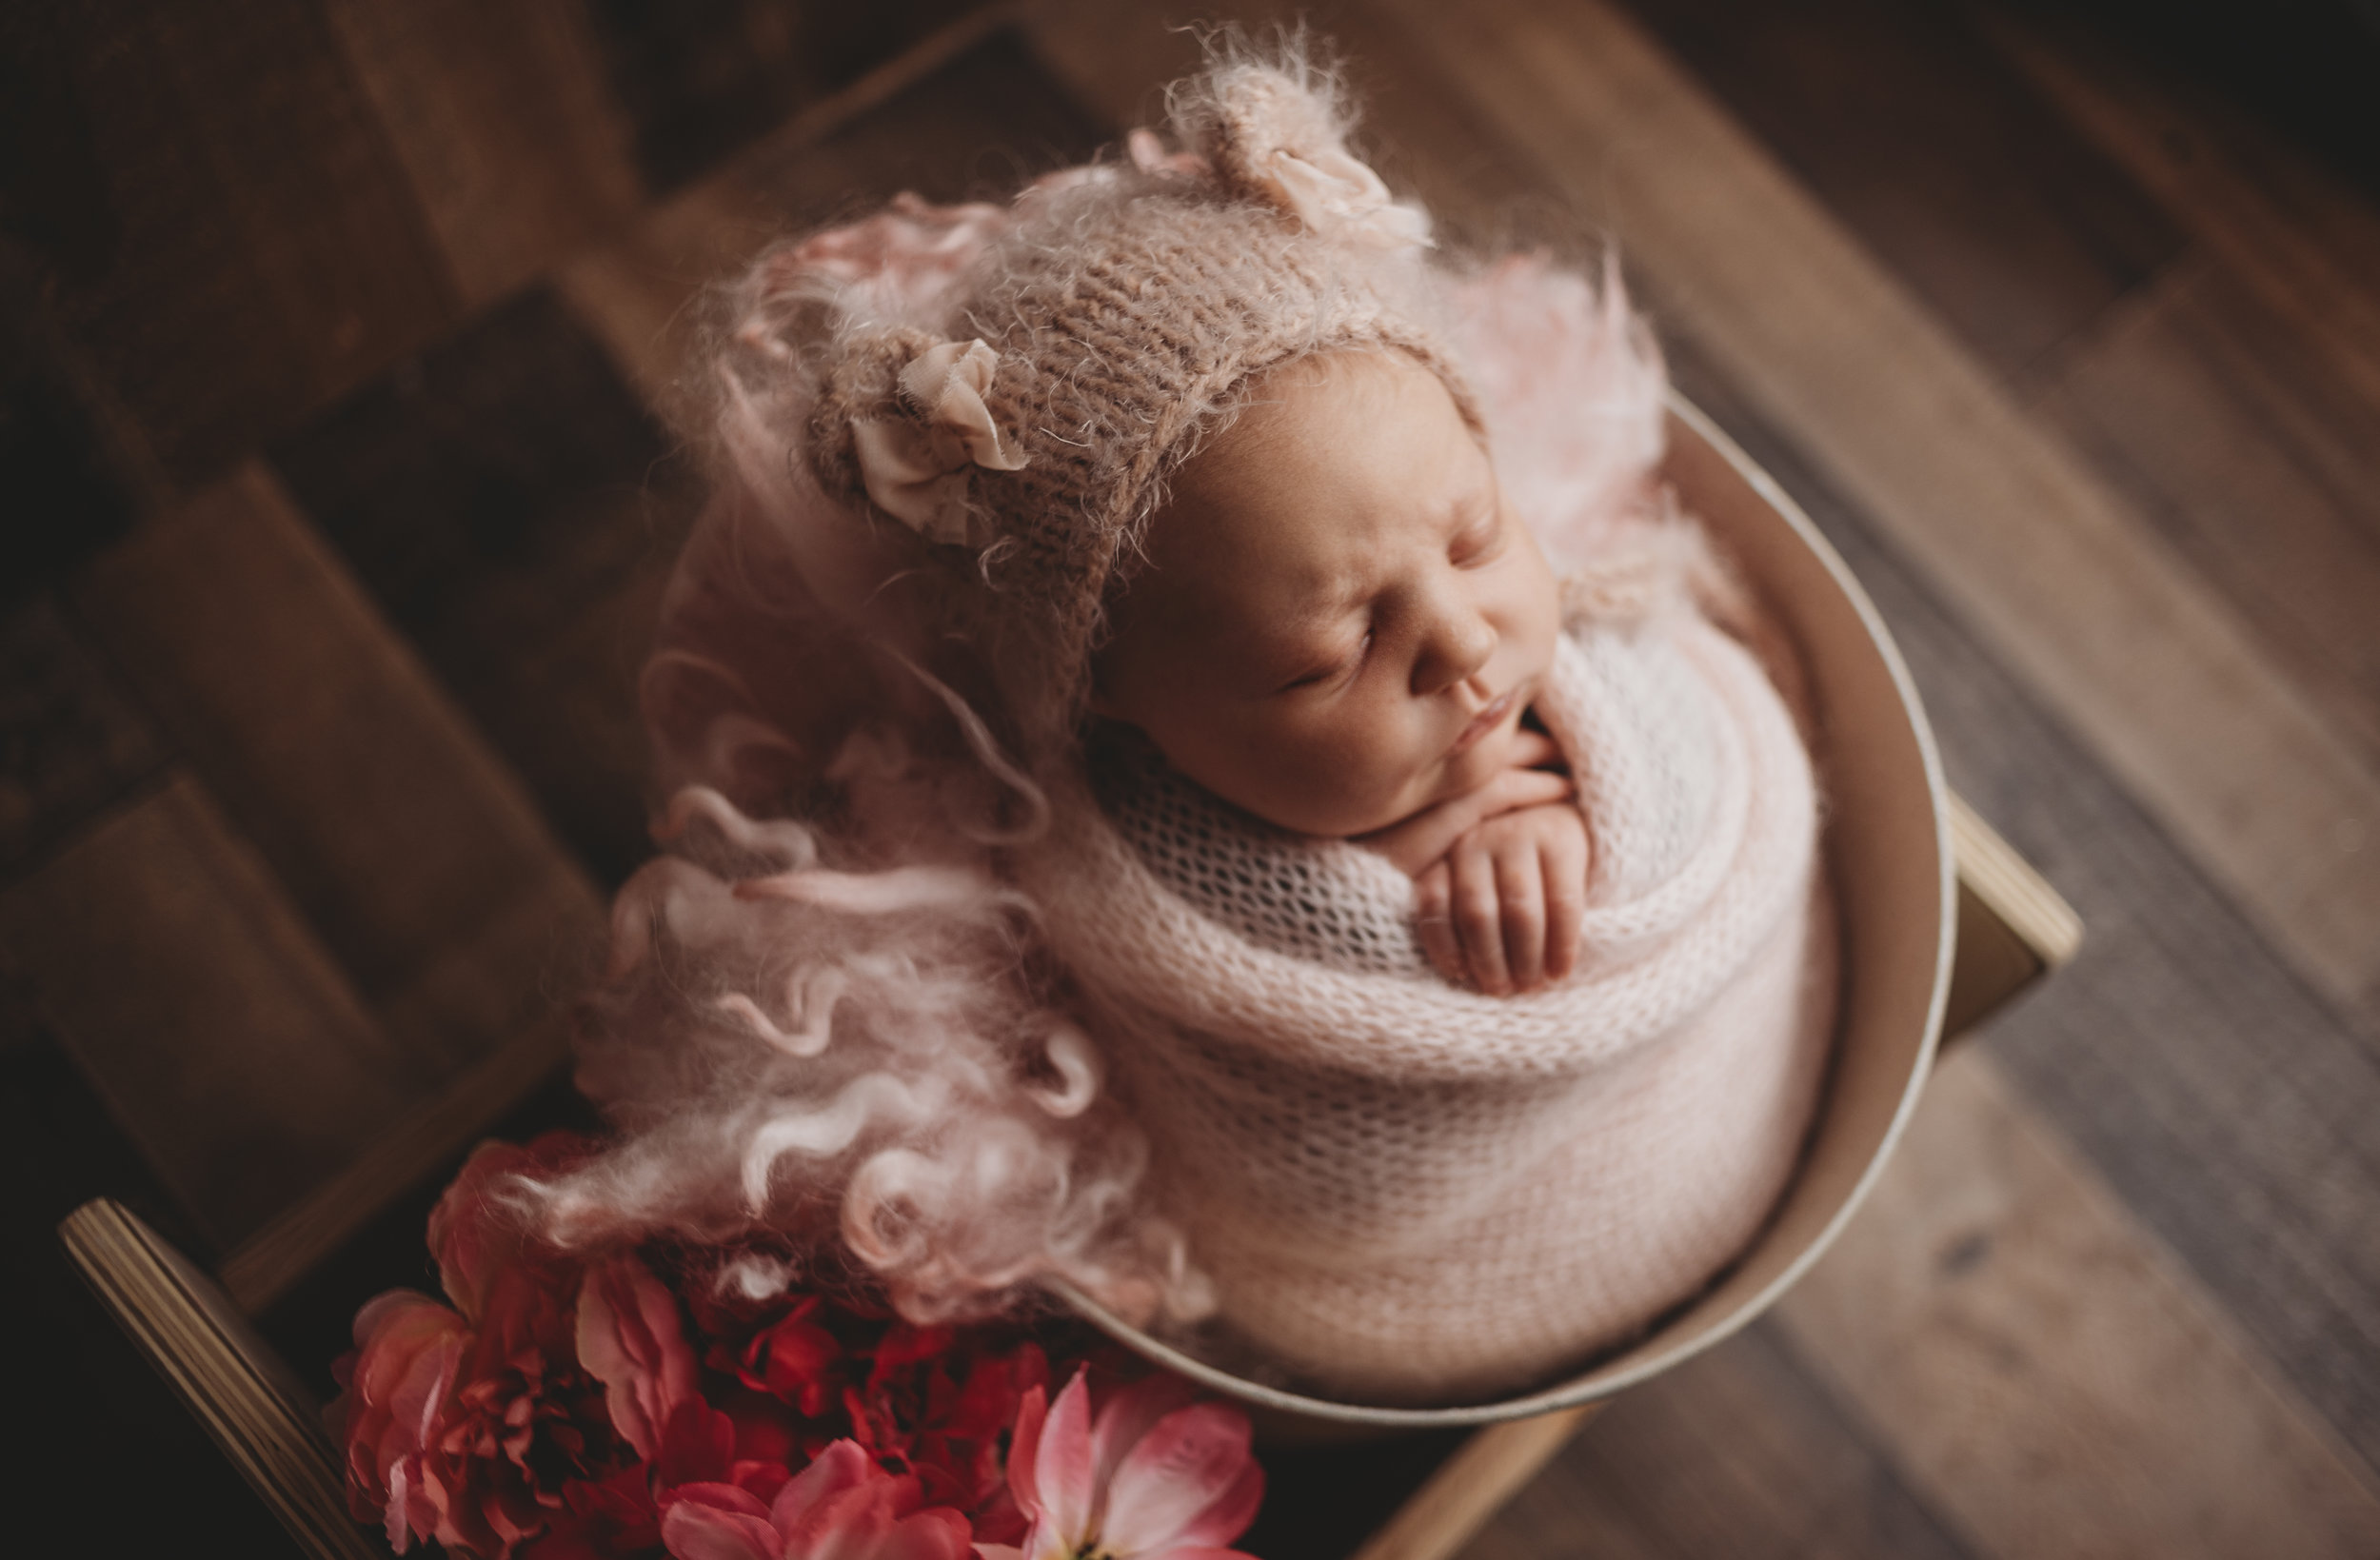 She mentioned at her maternity session how beautiful whit bear bonnet was. I did not forget. <3 I love seeing what my clients love!